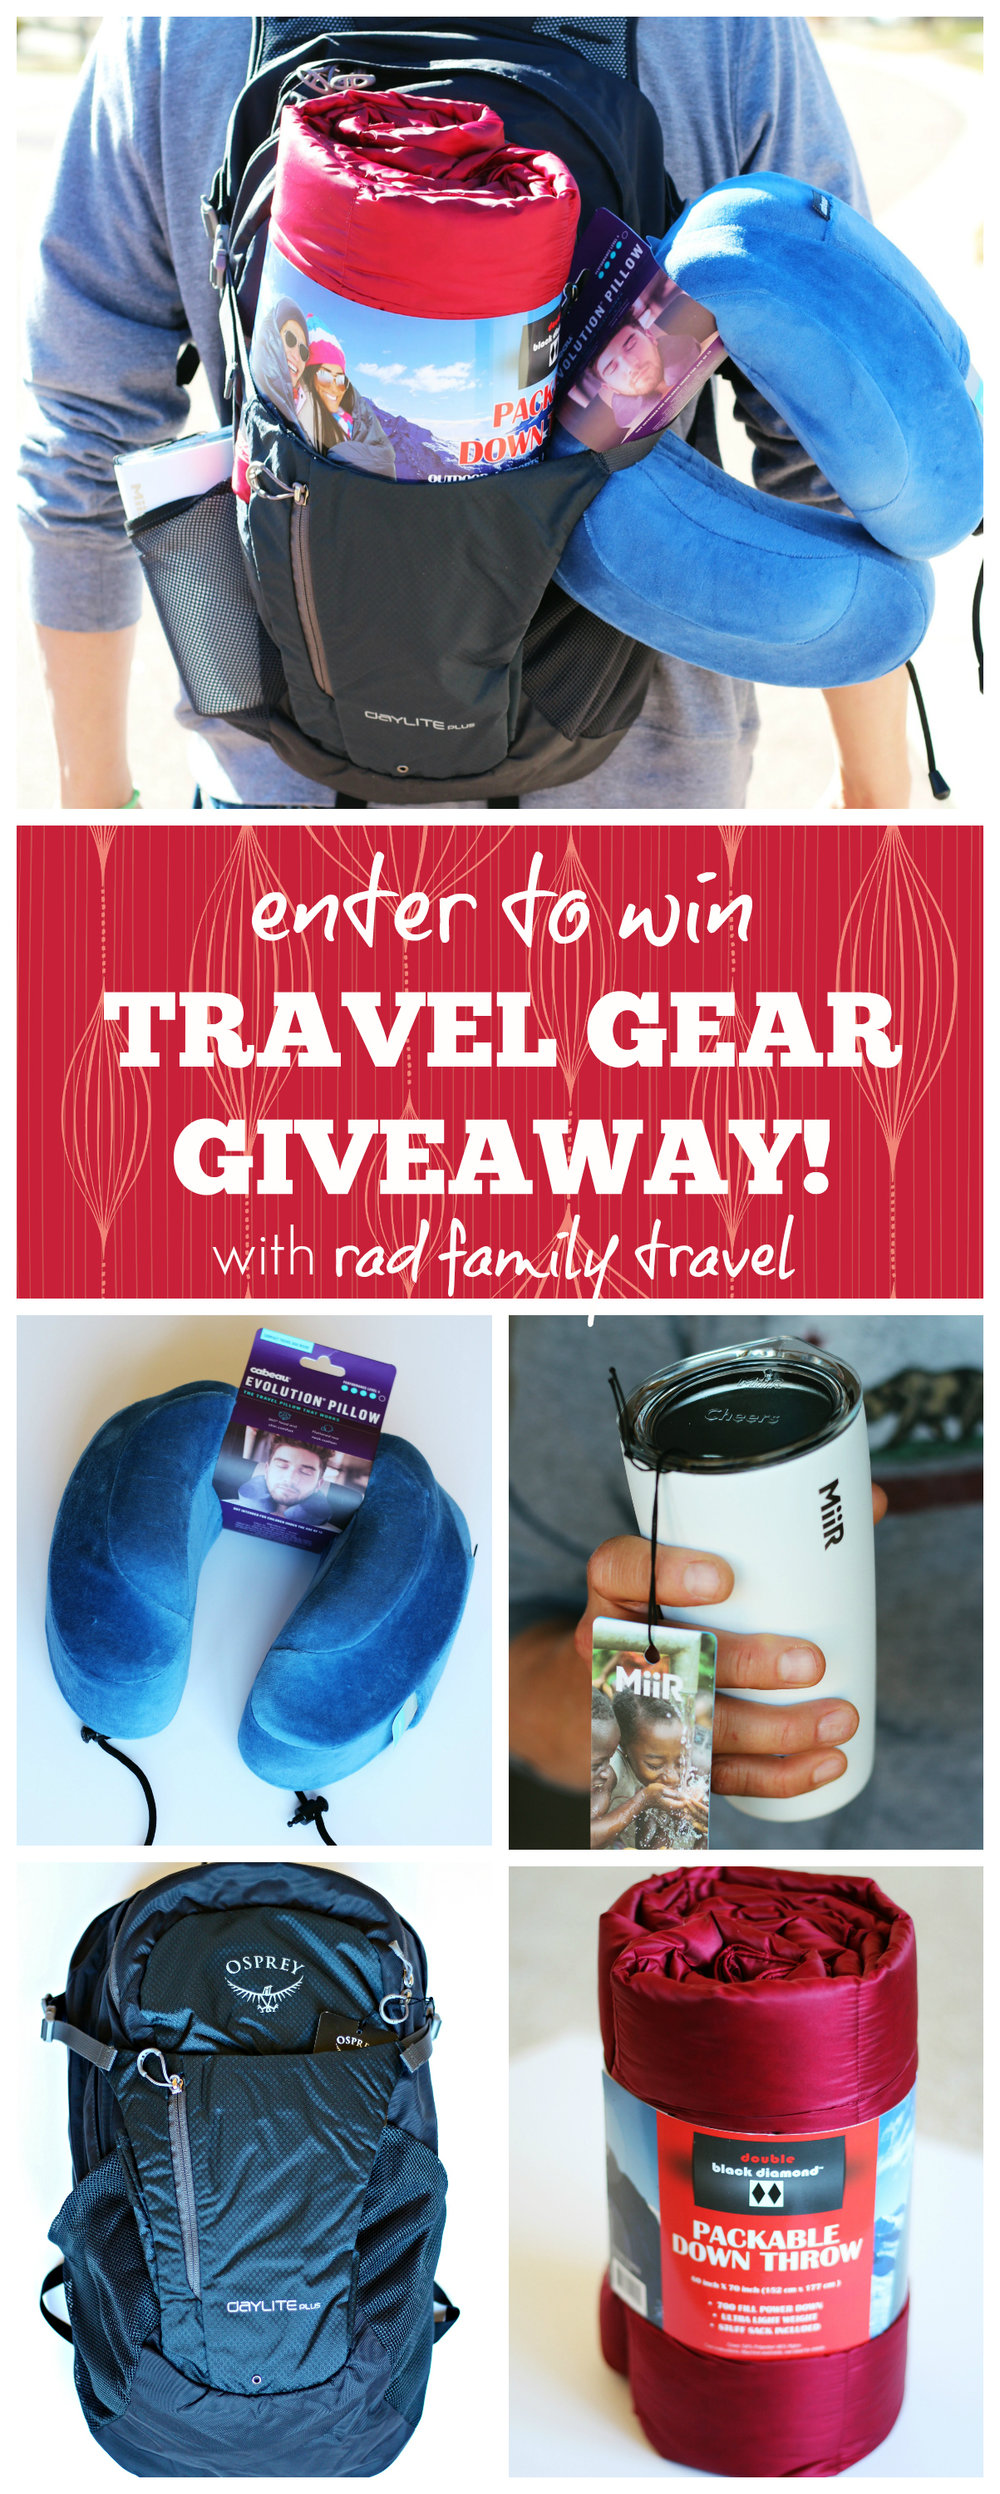 enter to win travel gear giveaway